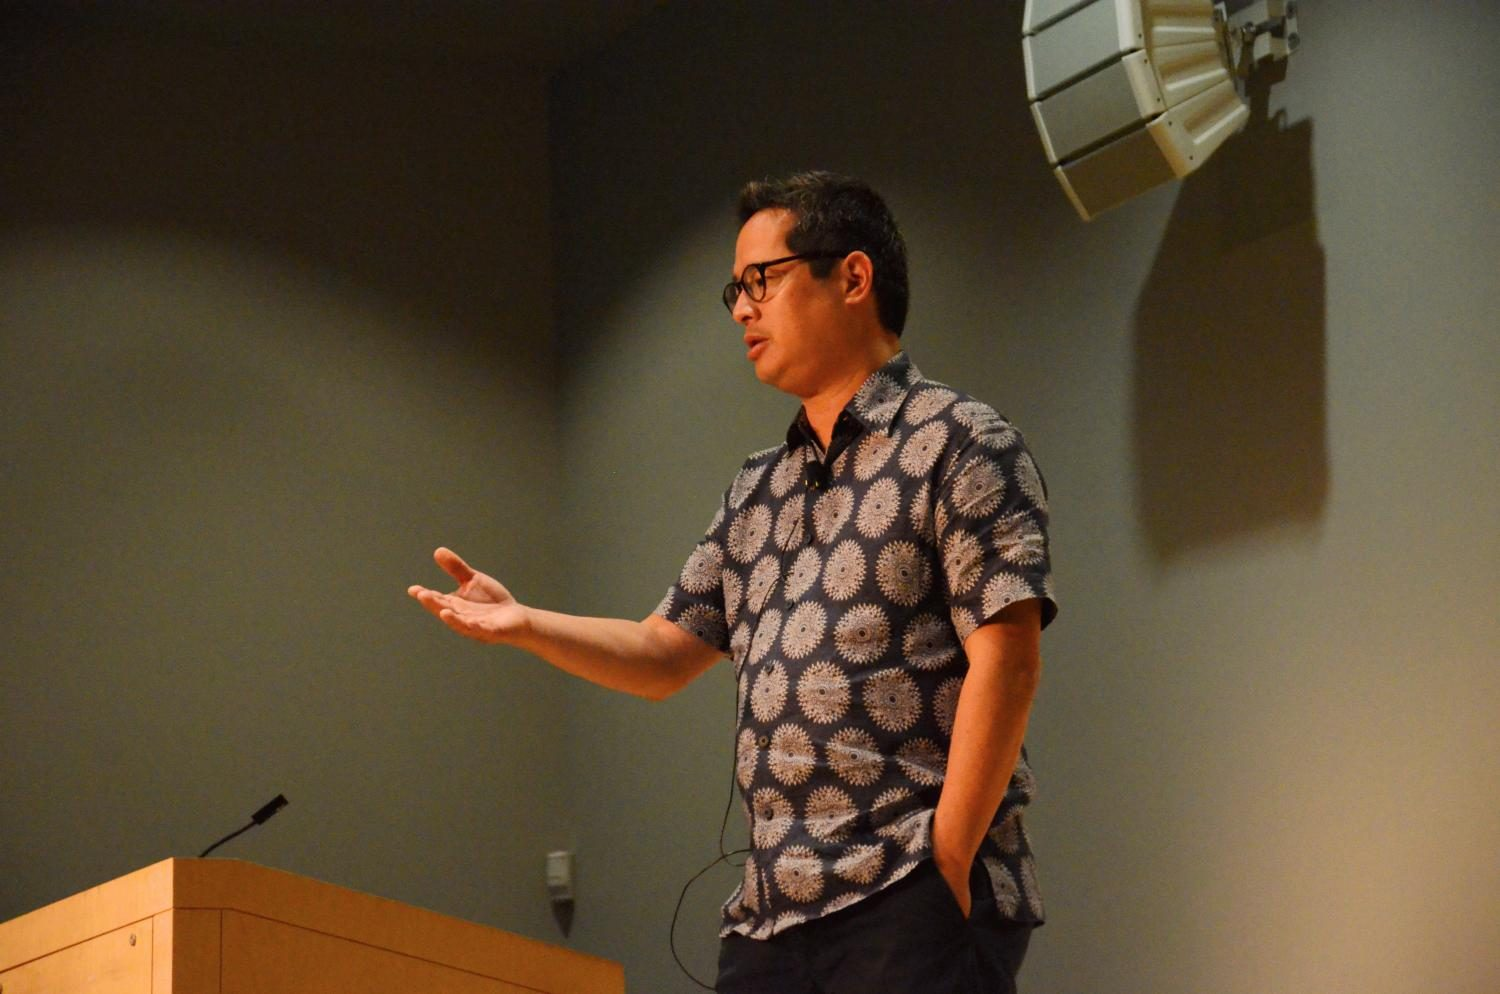 """Speaker Jeff Chang gestures as he talks about his journey towards becoming a writer on cultural issues. Chang was named a USA Ford Fellow in Literature in 2008 by philanthropic arts organization United States Artists and one of """"50 Visionaries Who Are Changing Your World"""" by American magazine Utne Reader in 2009."""